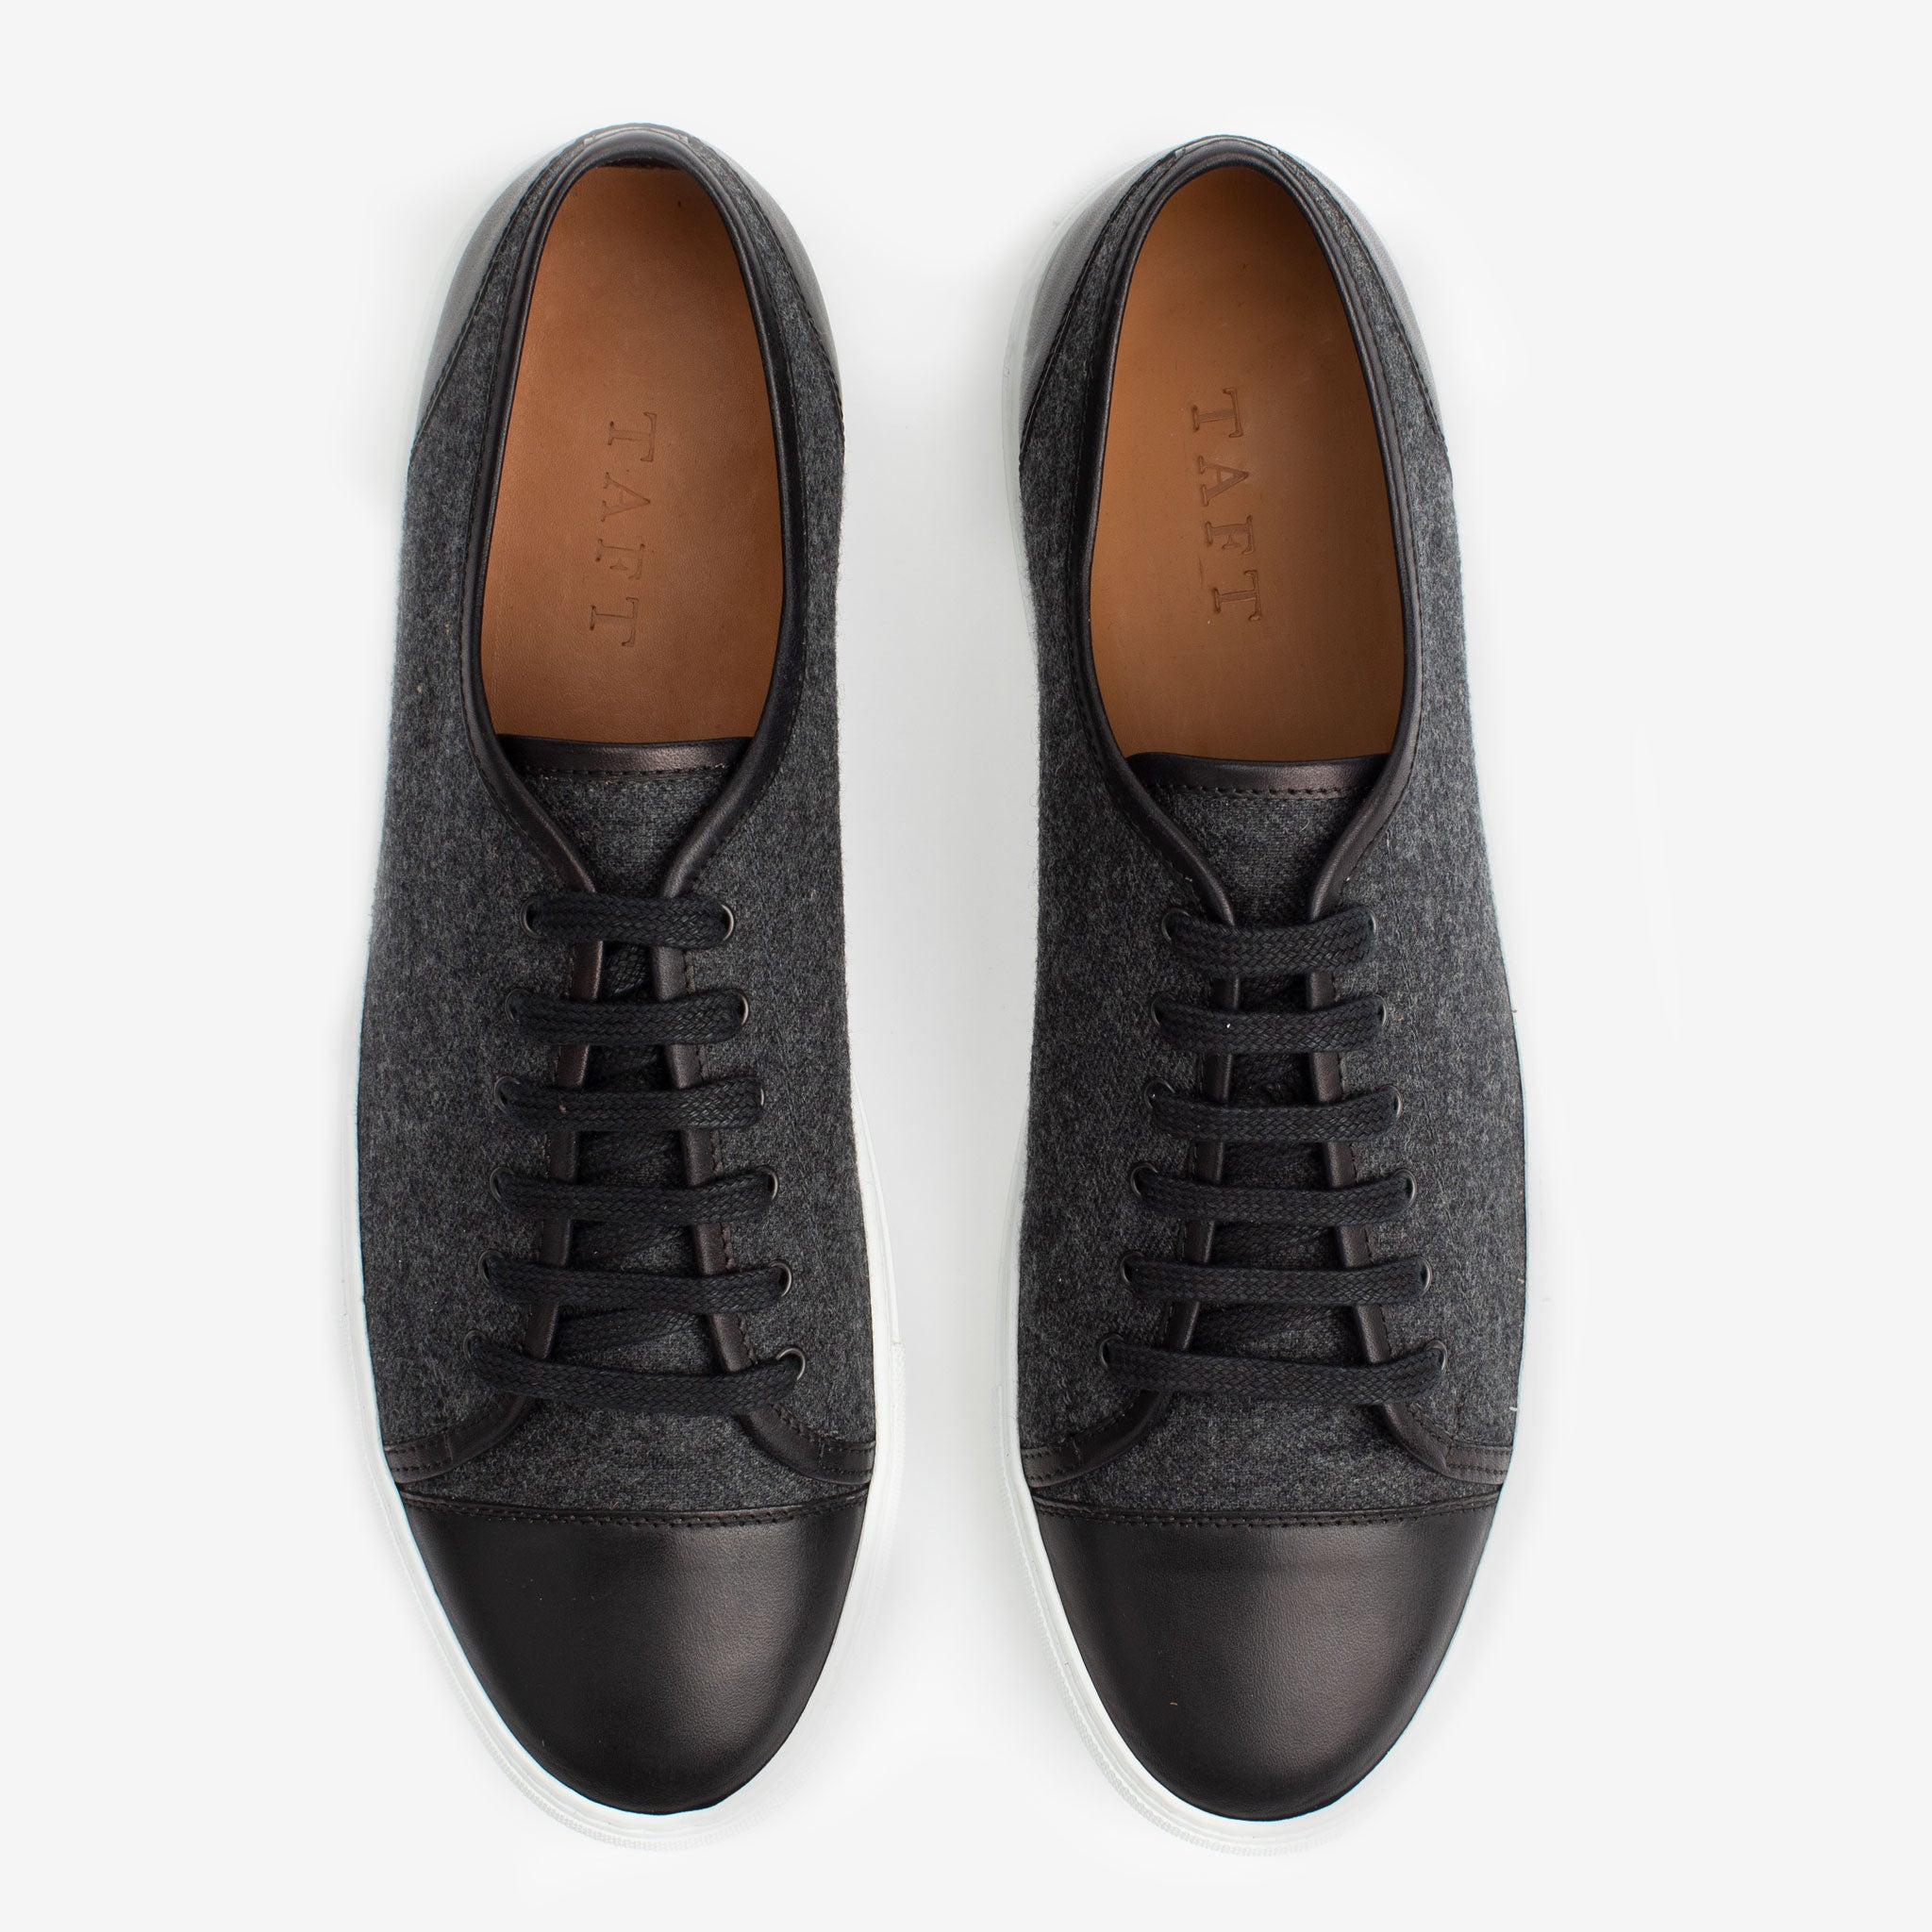 Jack Sneaker in Black Overhead